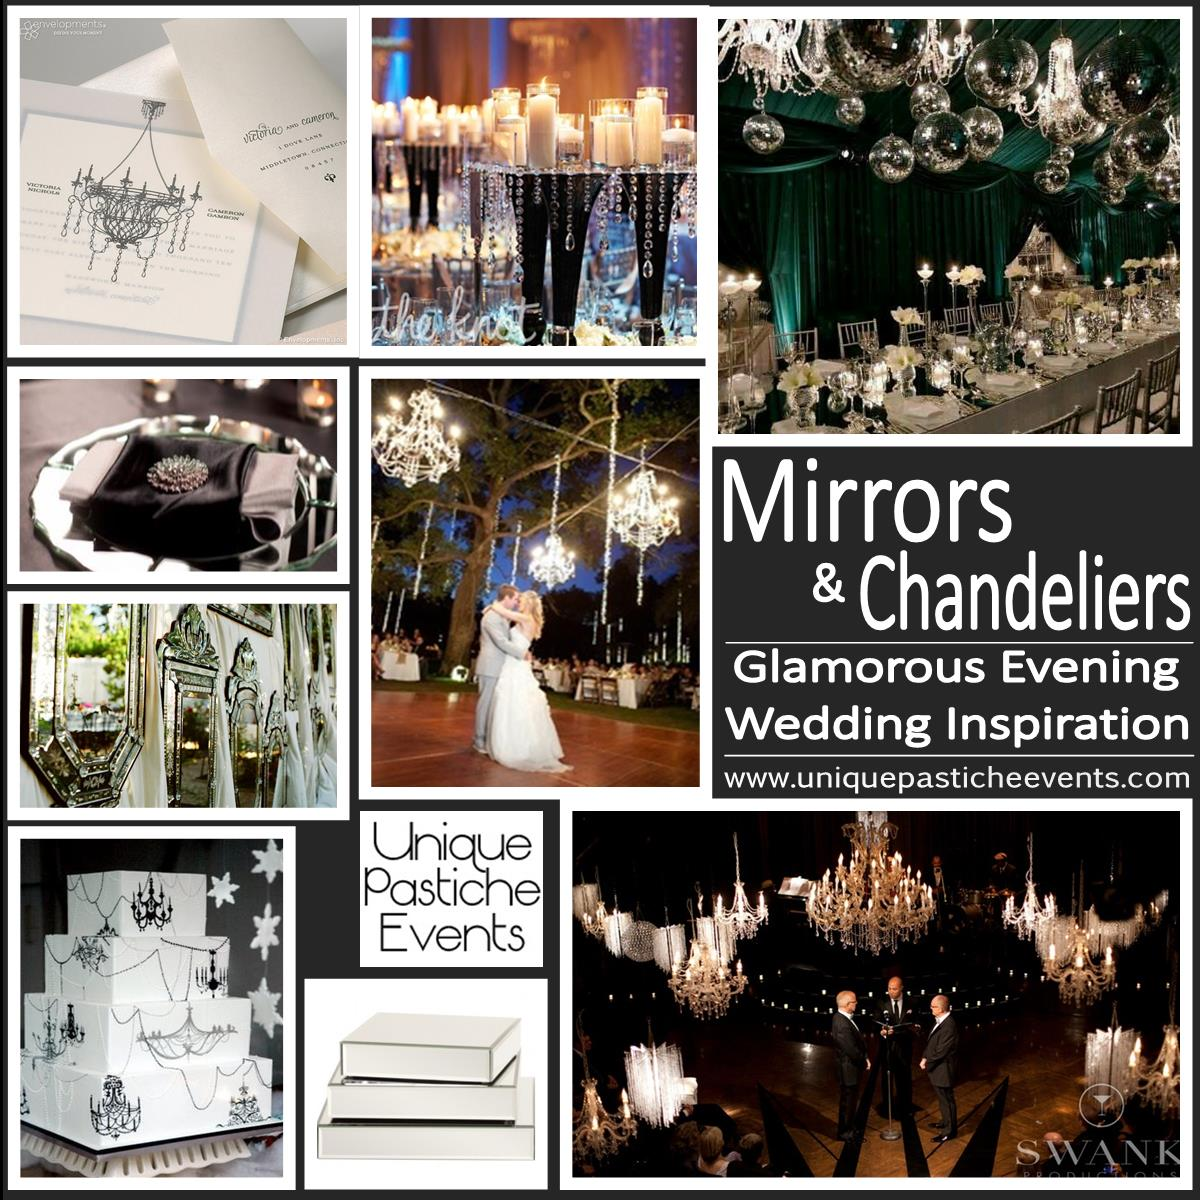 Chandelier unique pastiche events mirrors and chandeliers glamorous evening wedding inspiration arubaitofo Gallery